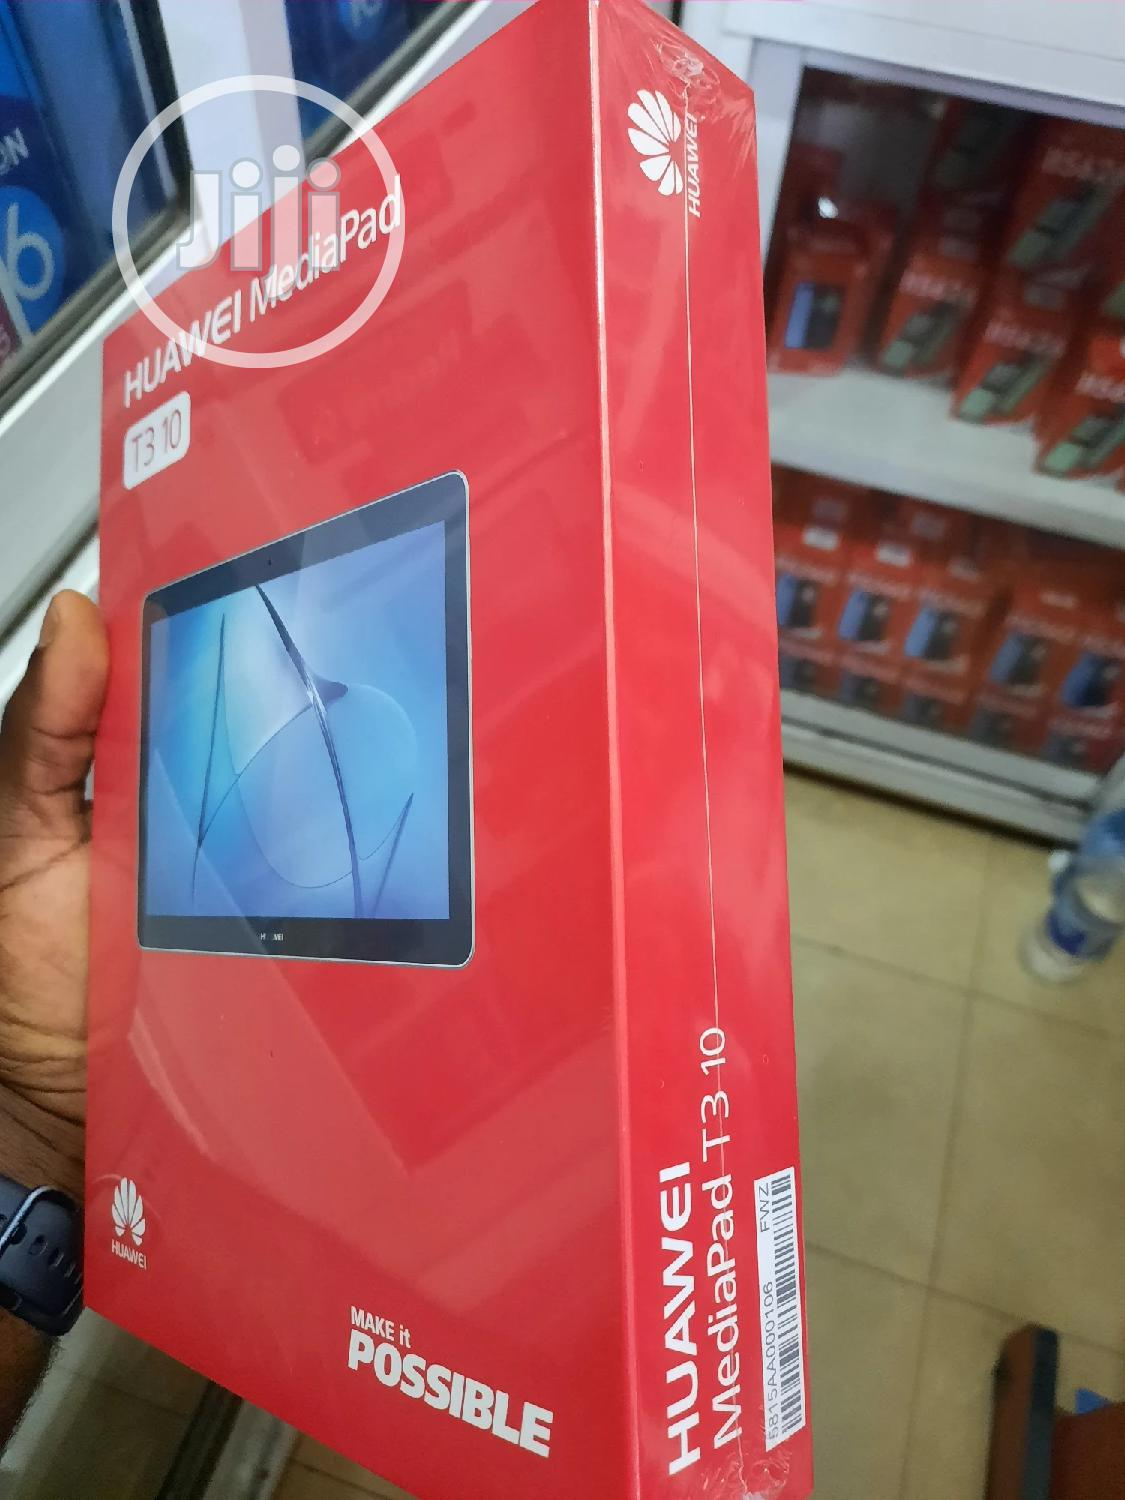 New Huawei MediaPad T3 10 32 GB | Tablets for sale in Ikeja, Lagos State, Nigeria